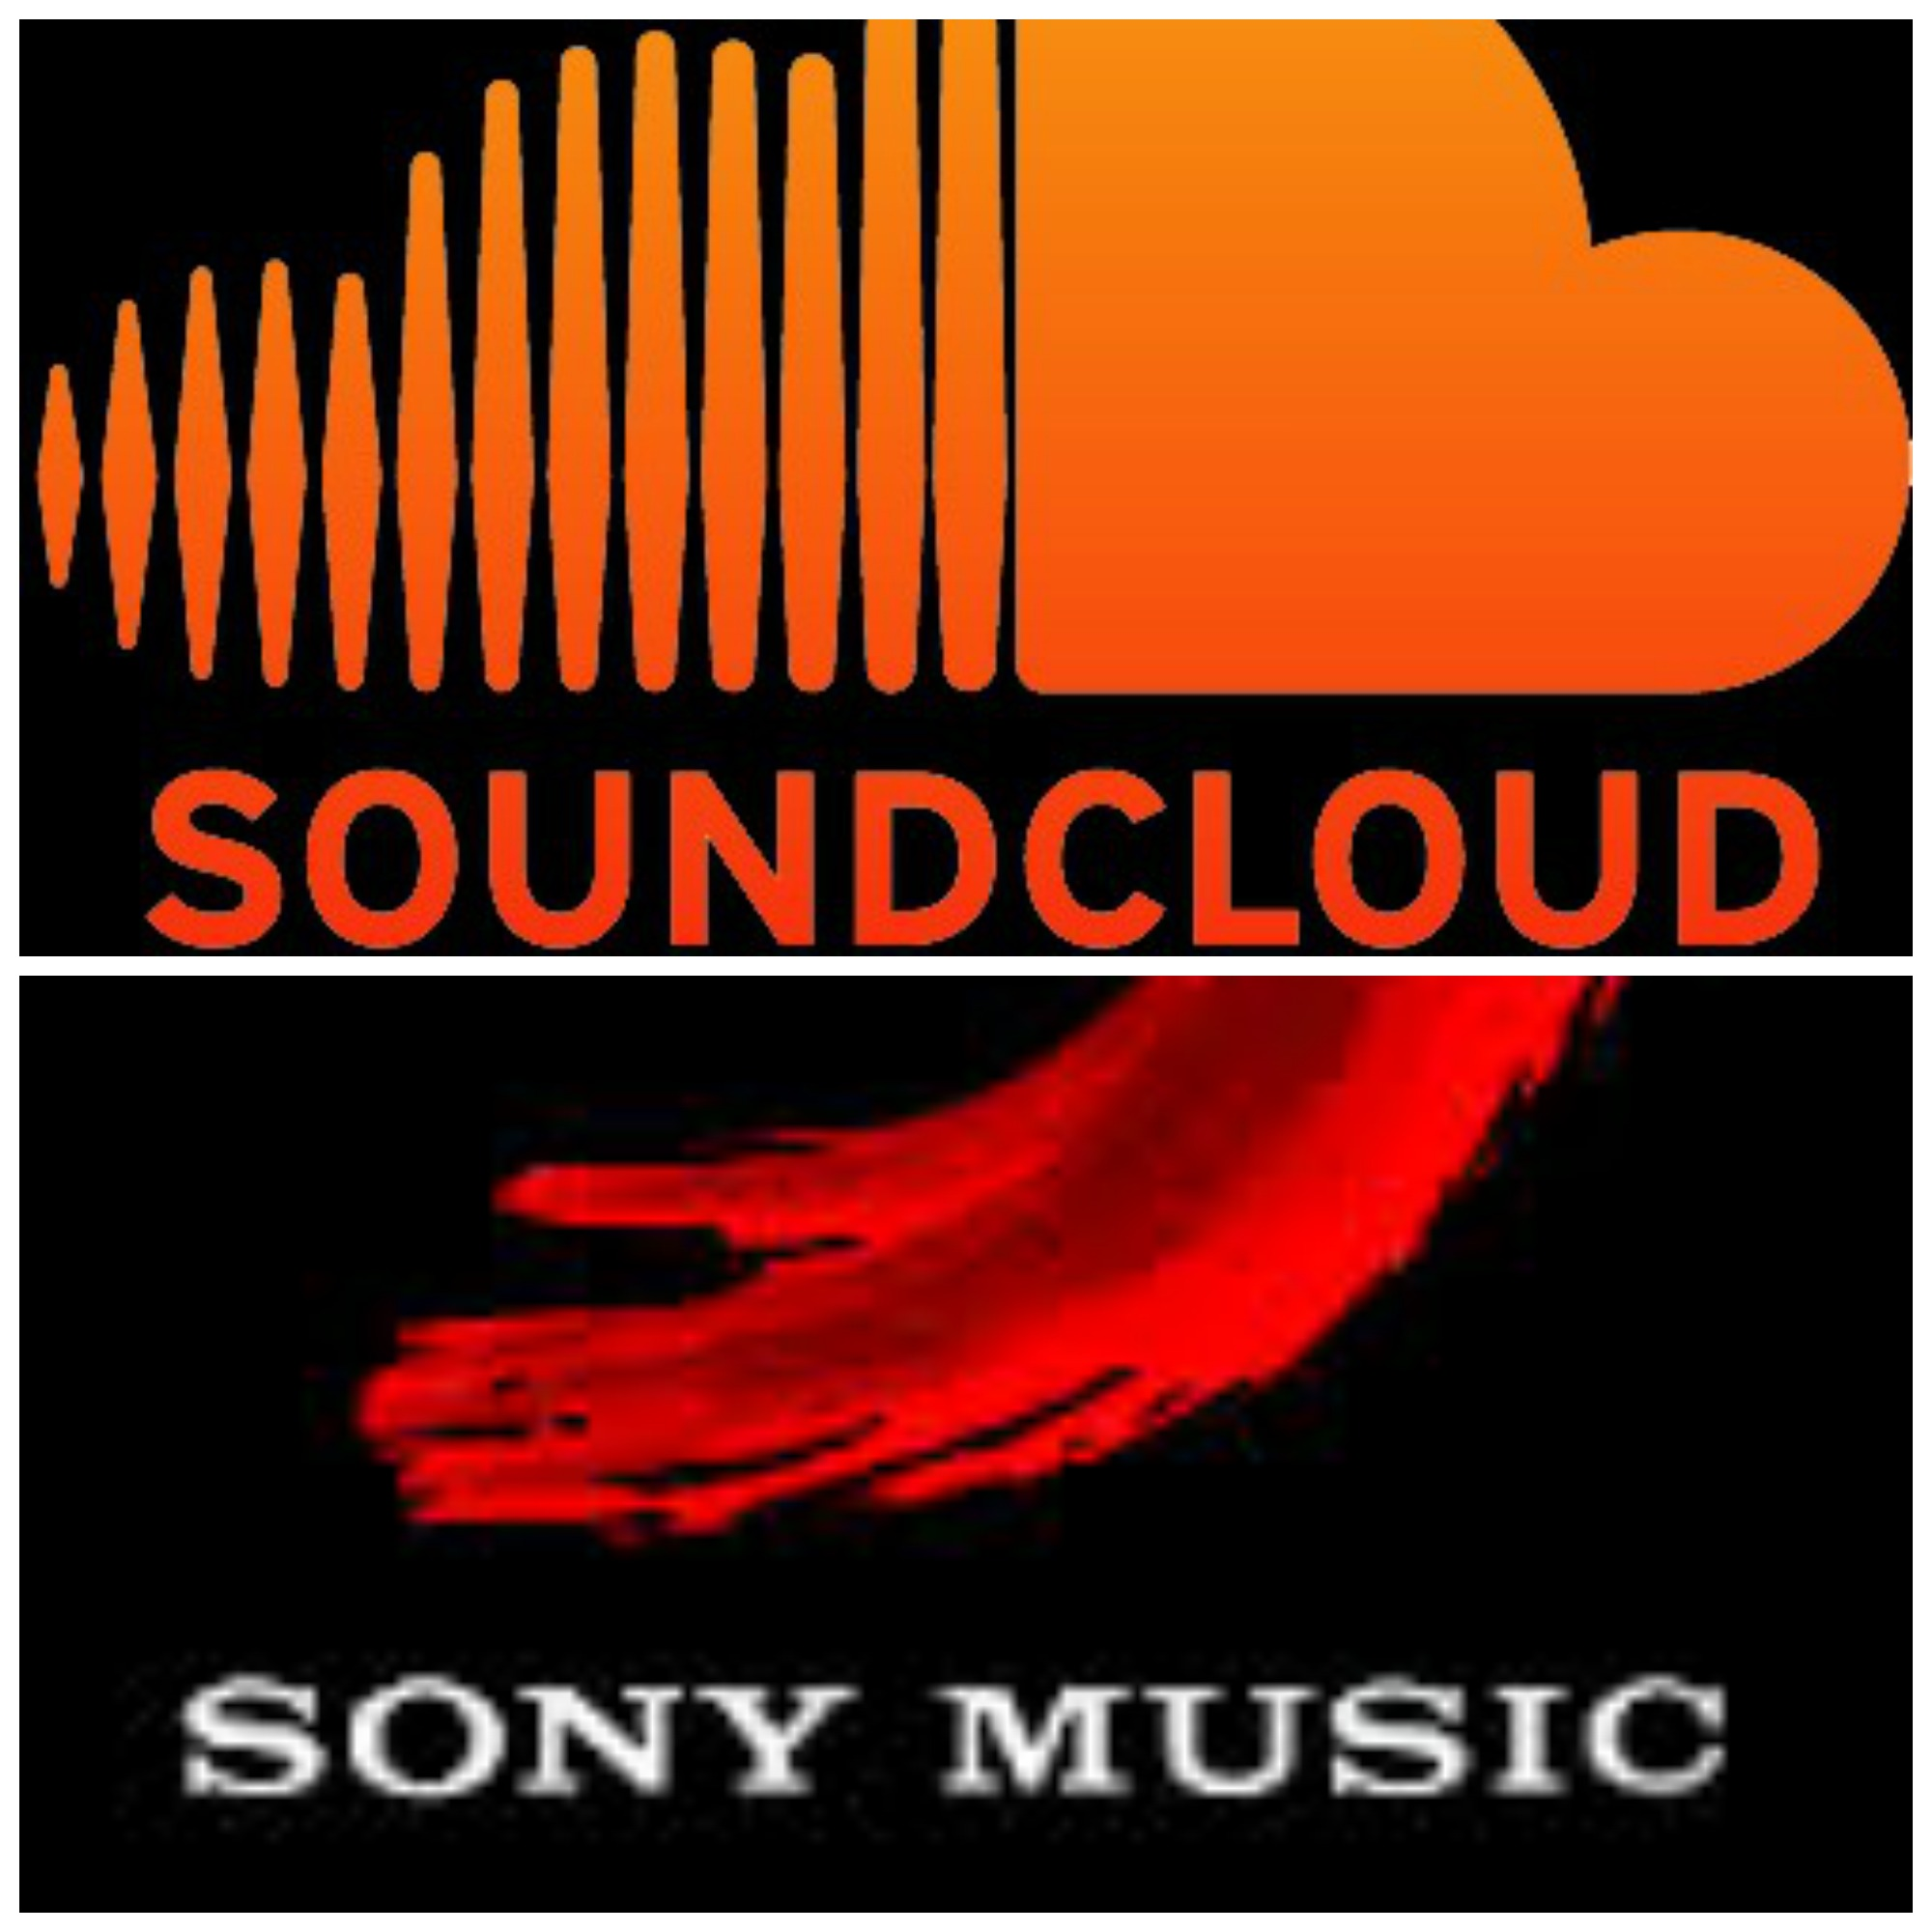 Adam Marx S Mind: SoundCloud's Failed Highwire Balancing Act: The Sony